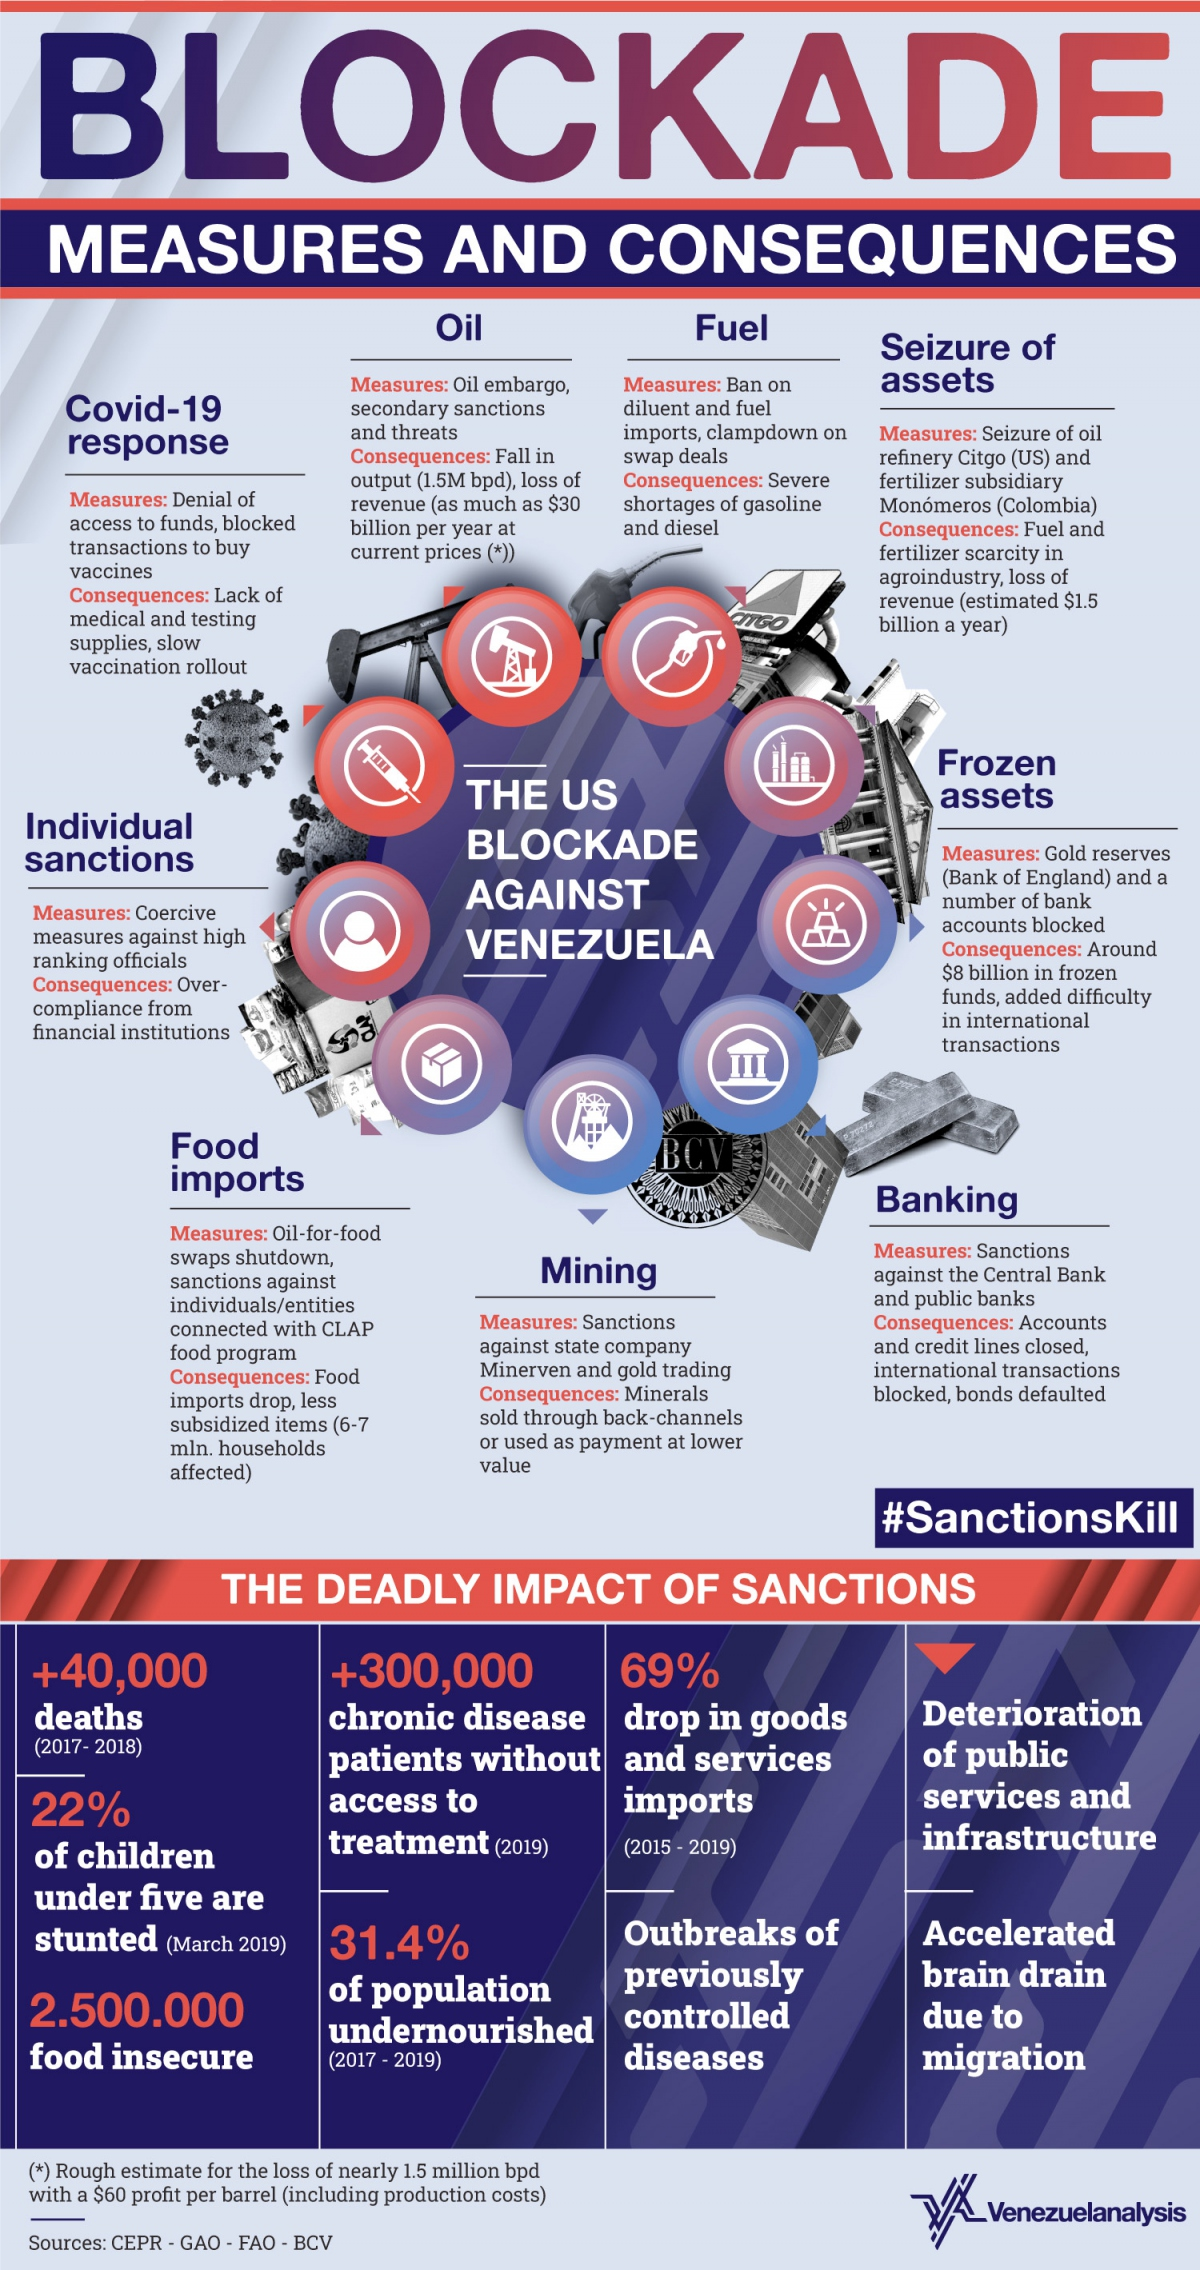 A look at the the crushing sanctions levied by the US and allies, as well as their consequences for the Venezuelan population. (Venezuelanalysis / Utopix)